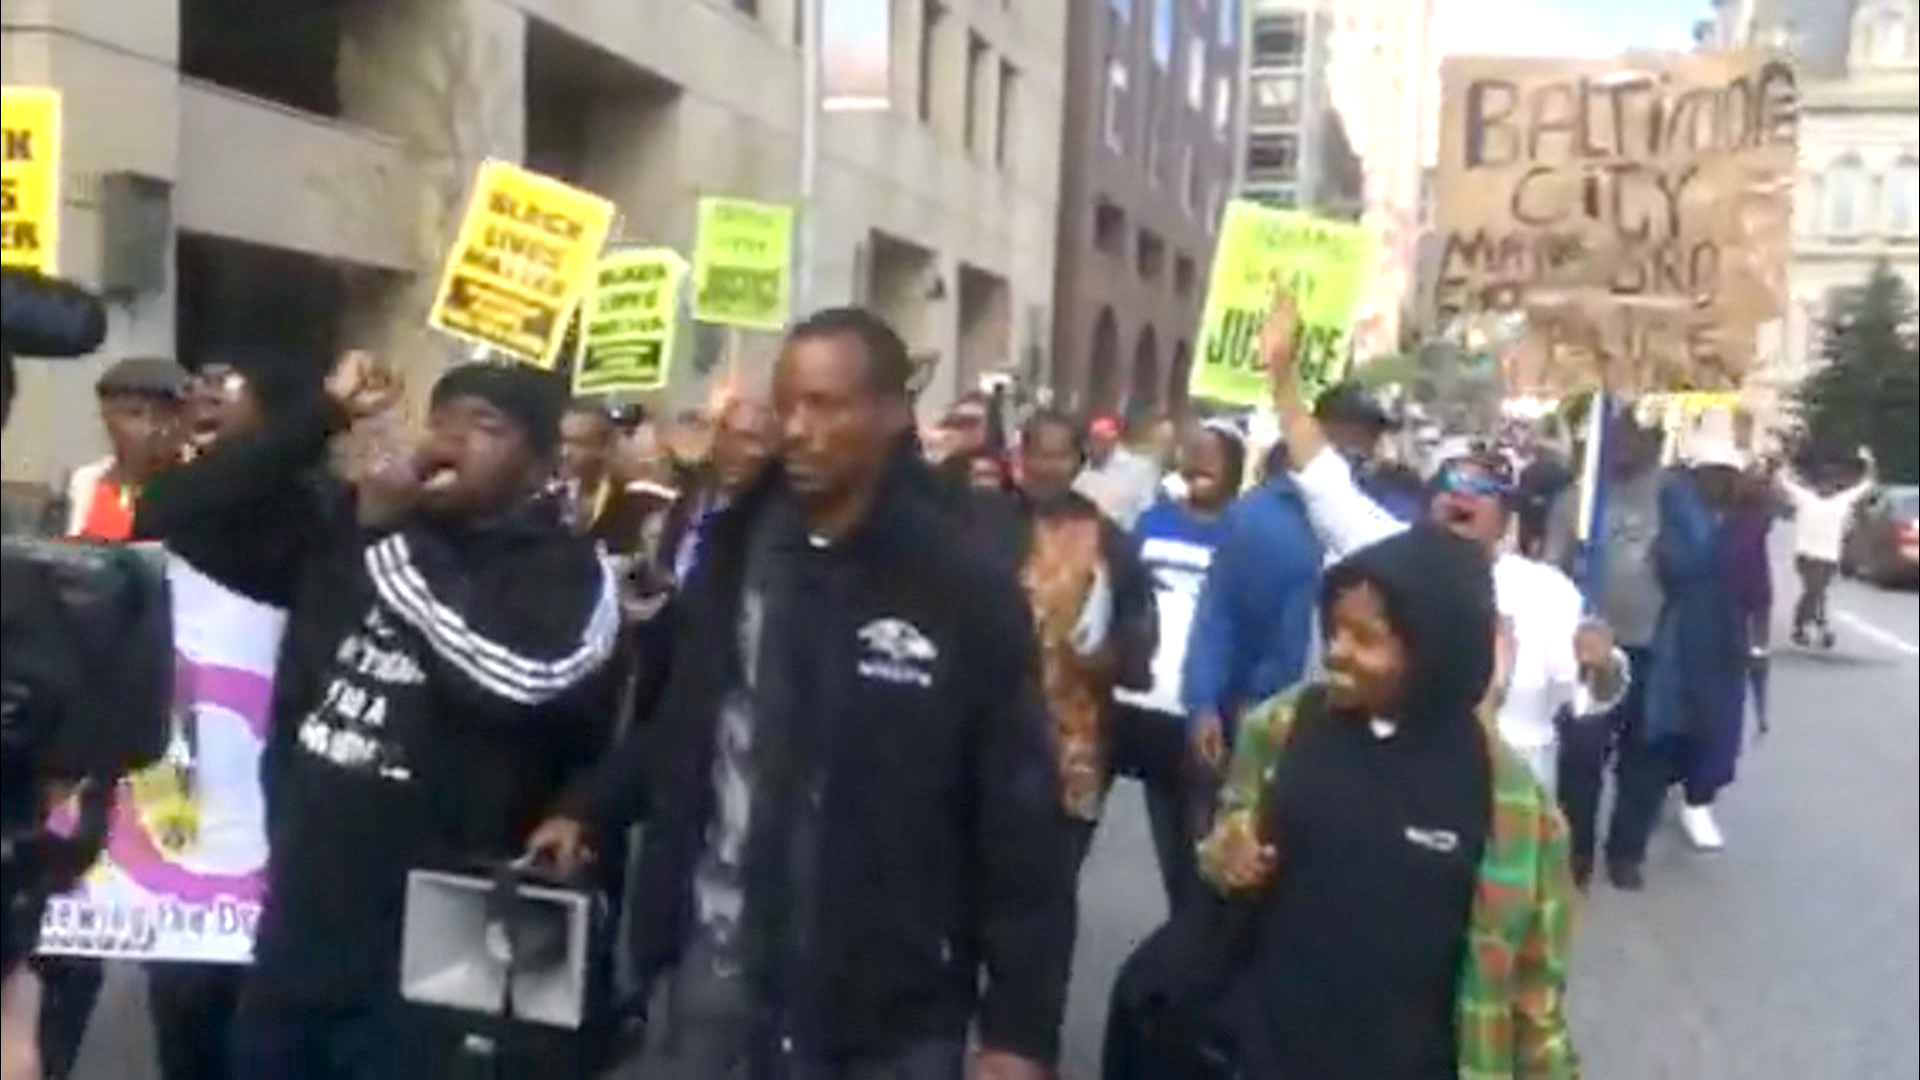 Protesters Demand 'Justice' in Freddie Gray's Death